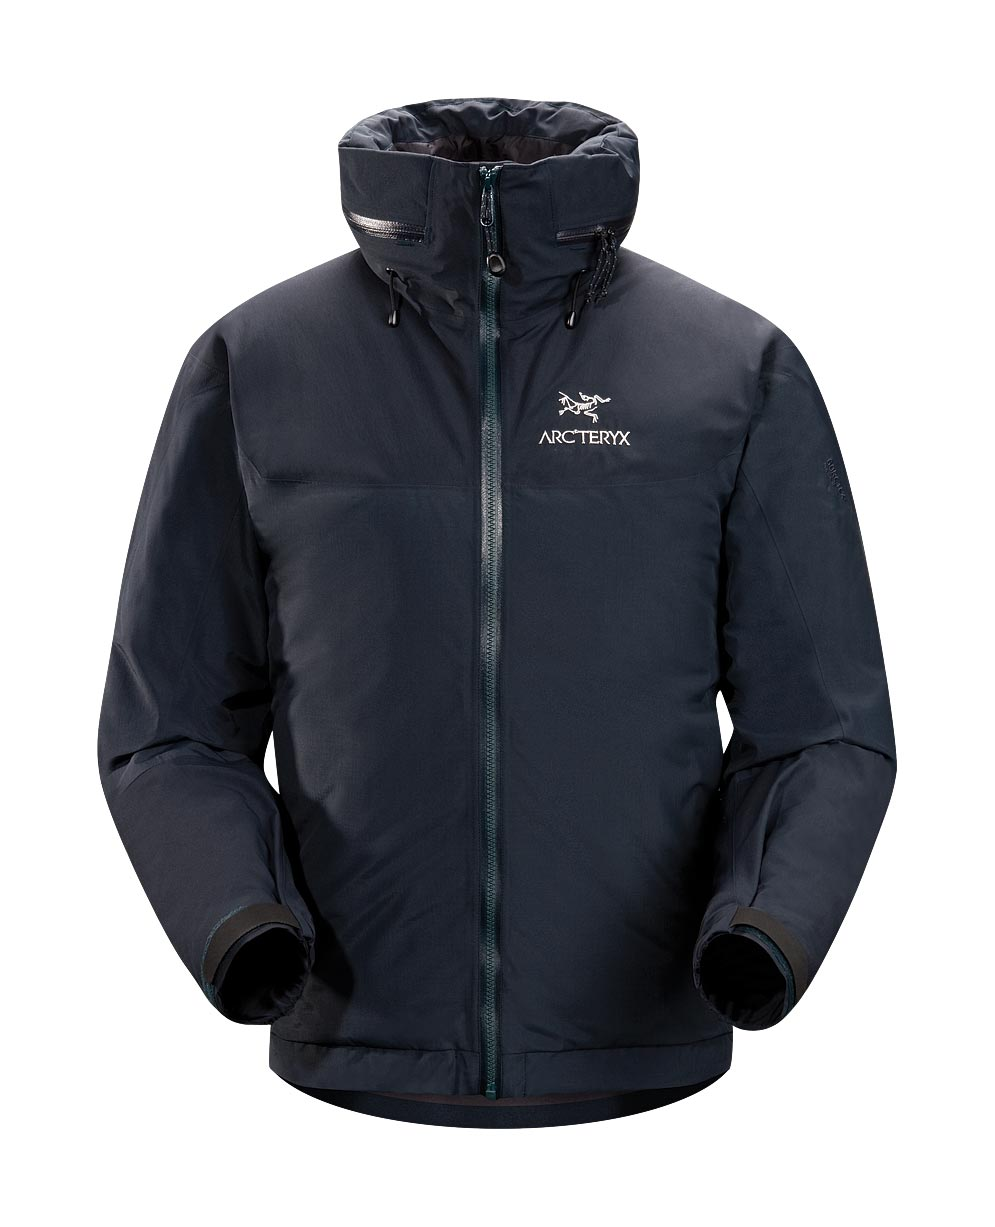 Arcteryx Jackets Men Deep Dusk Fission AR Jacket